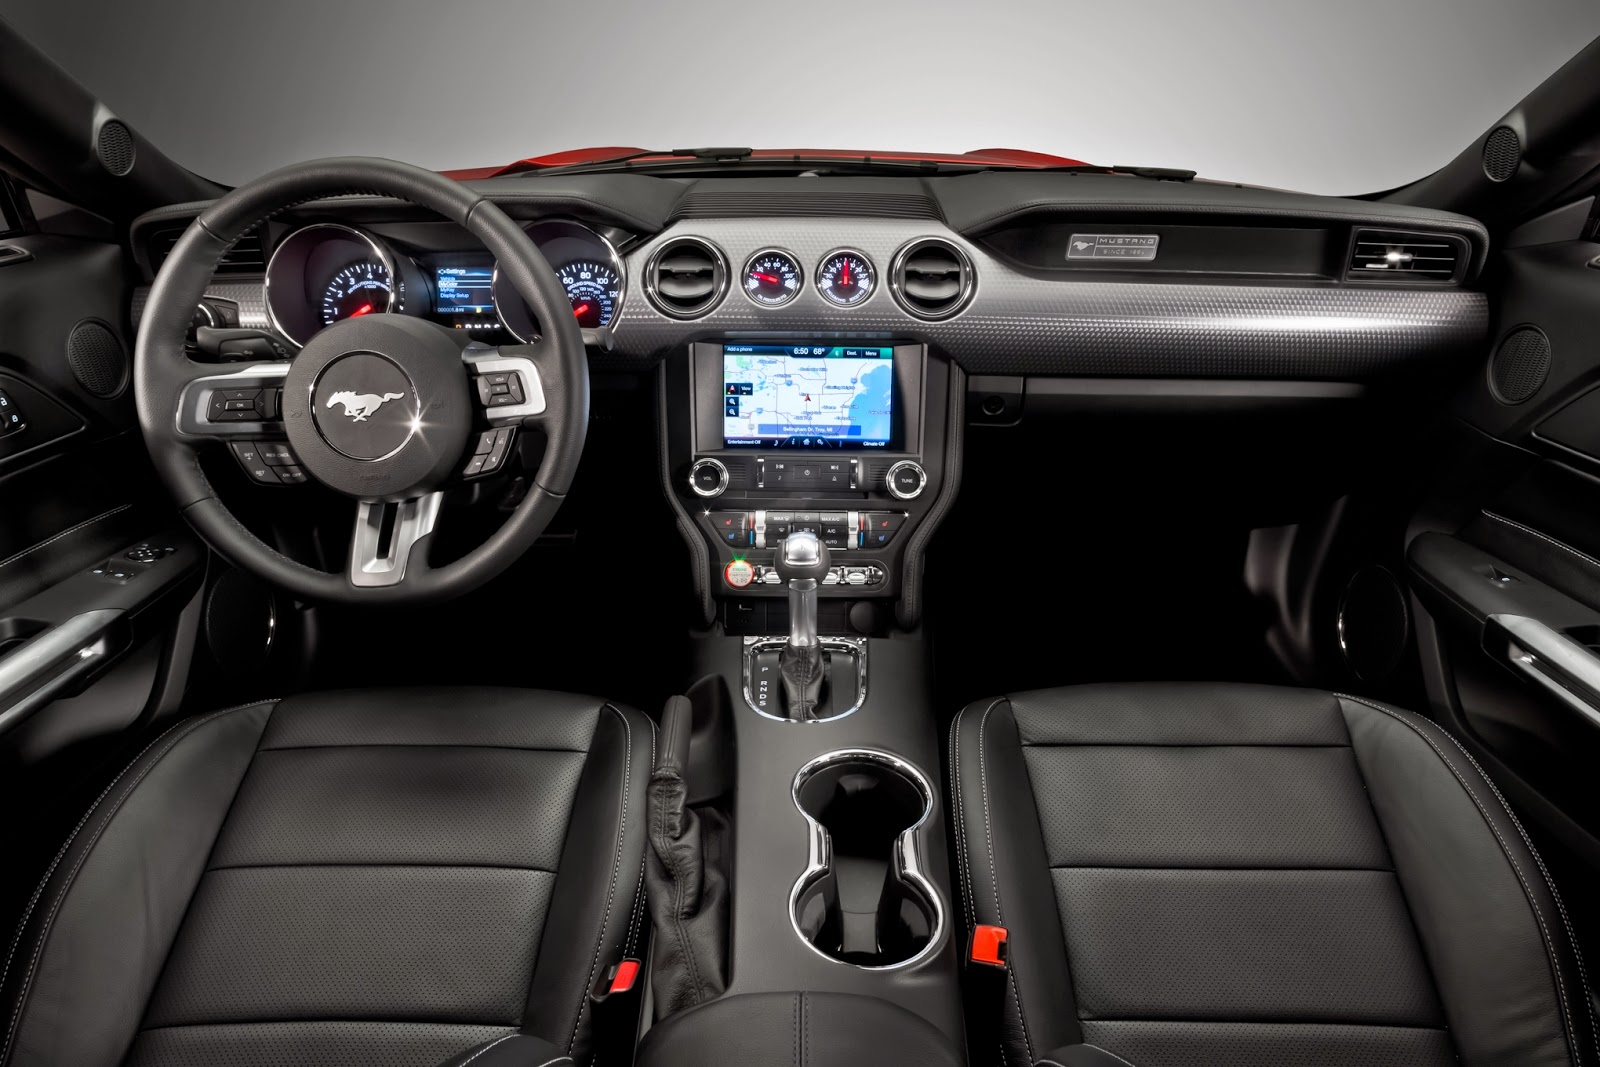 2015 Ford Mustang Interior Car Wallpaper